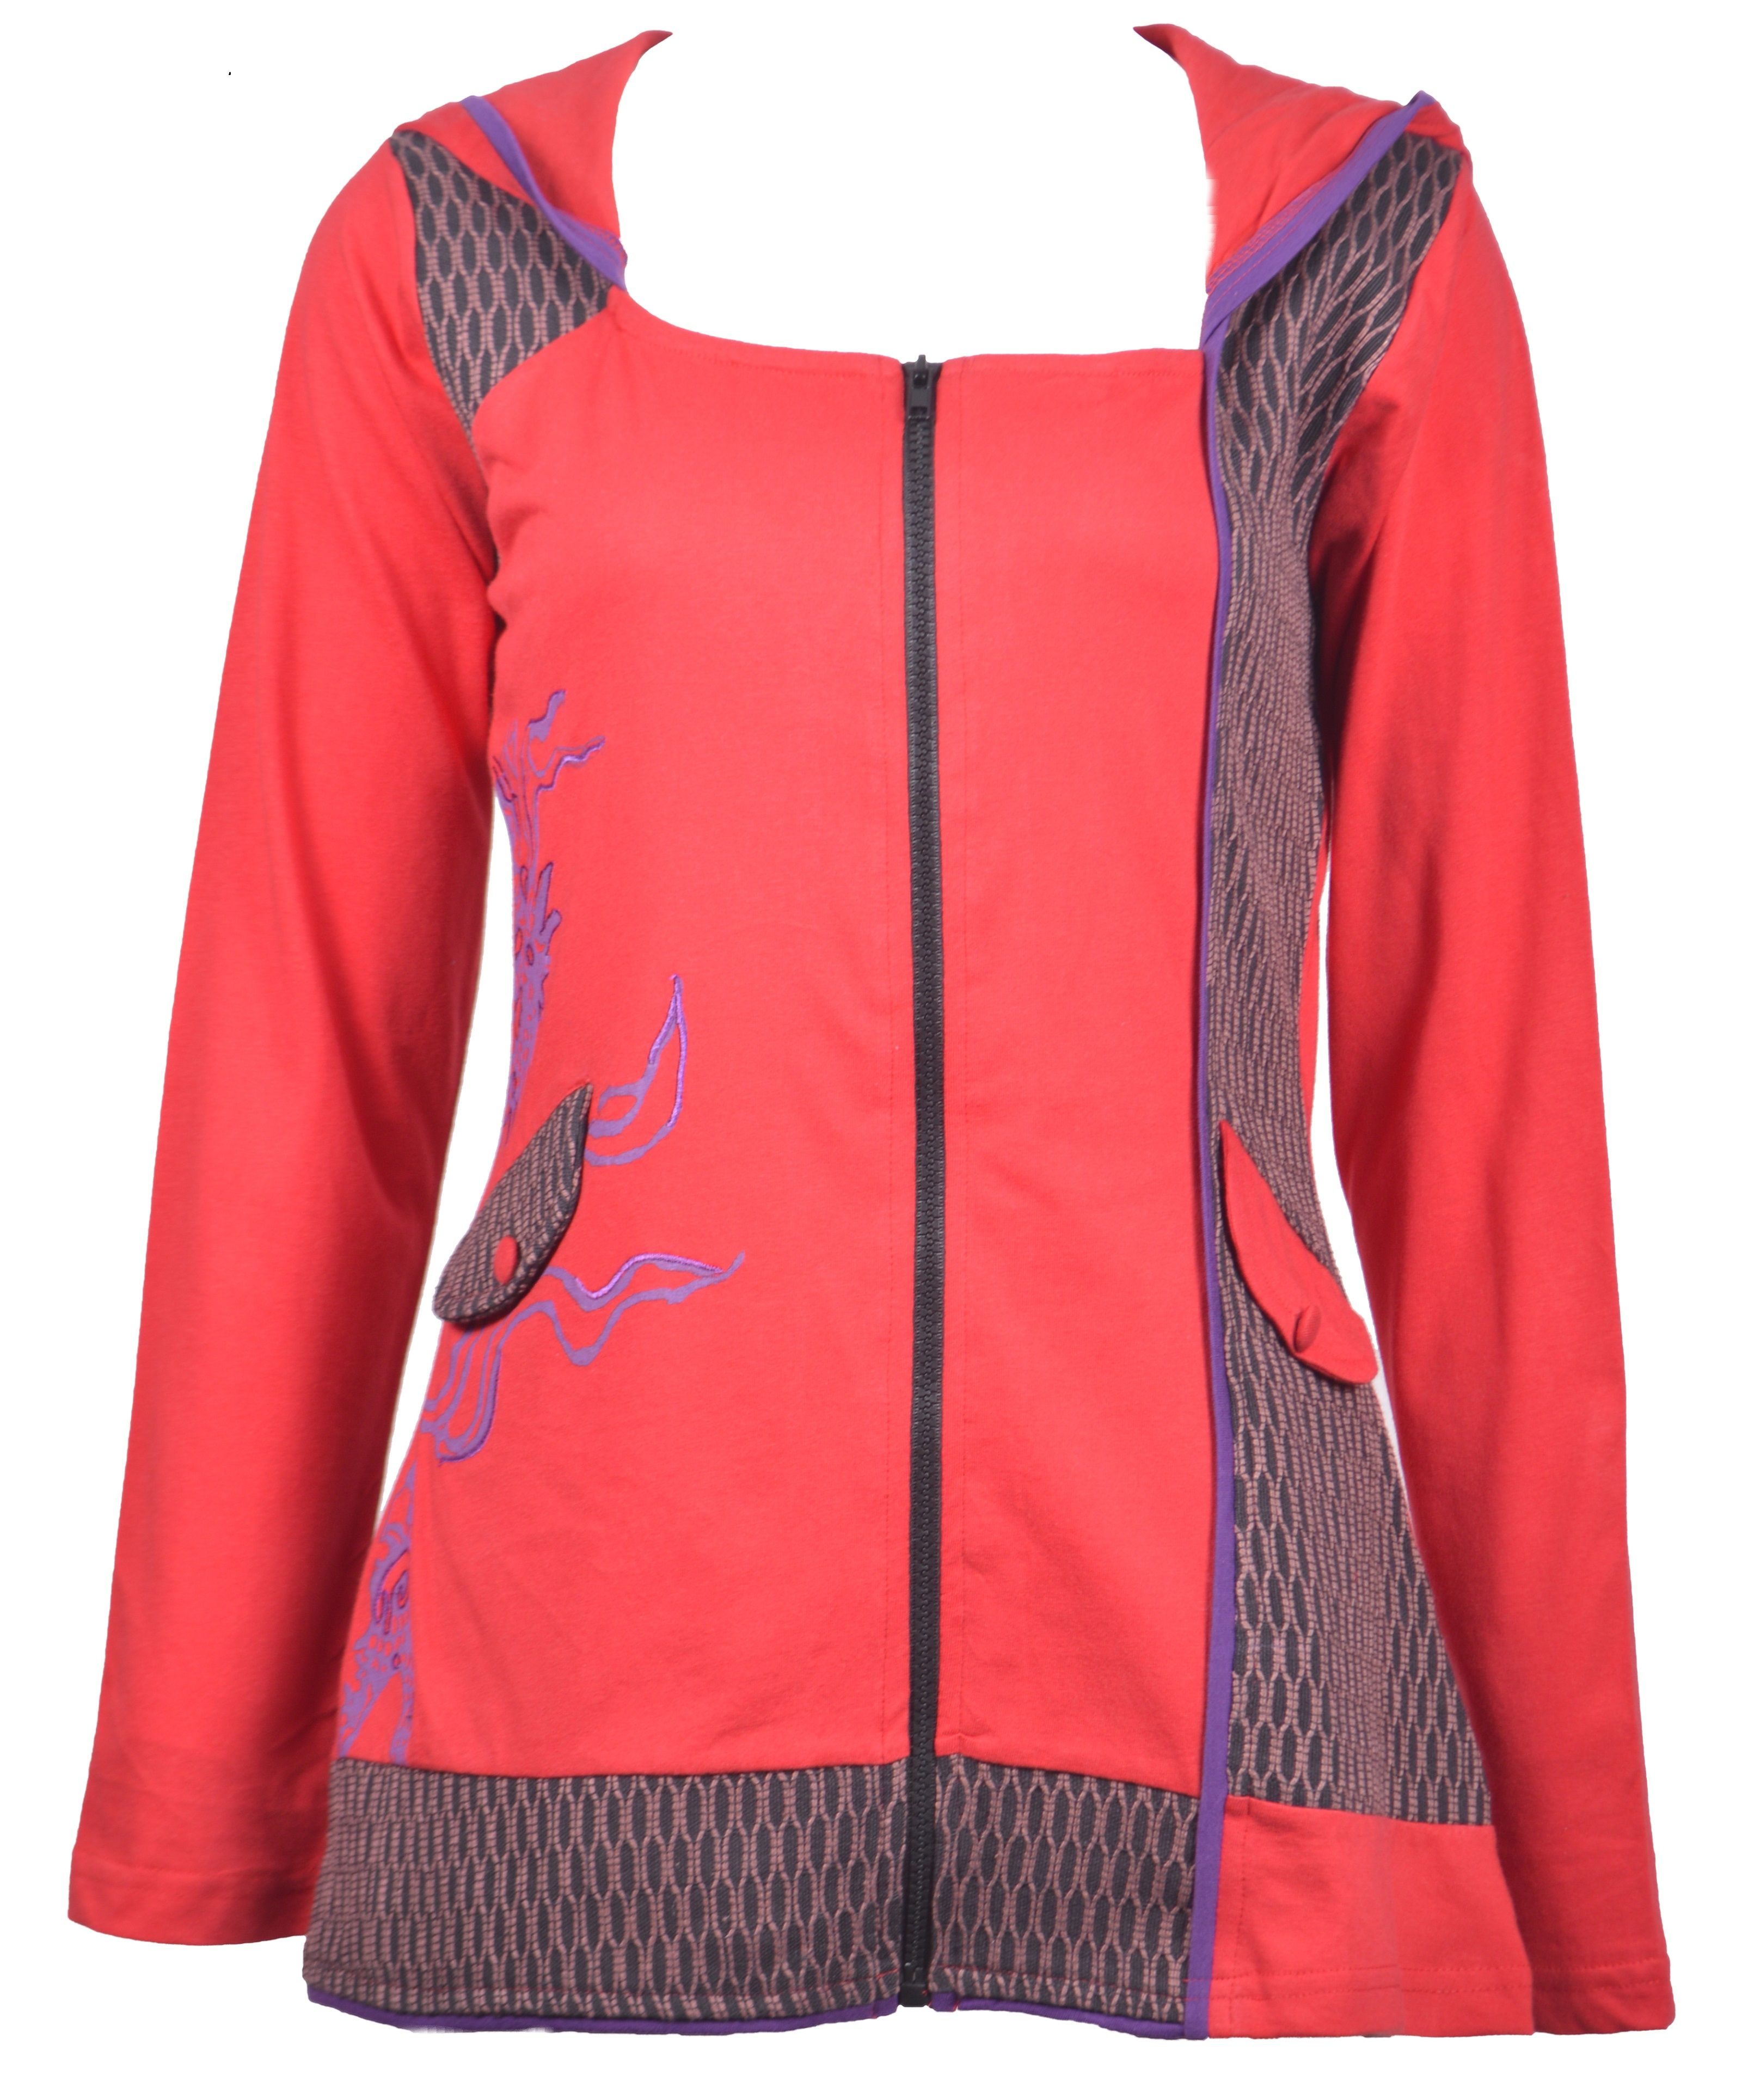 Women's Red Long Sleeve Sinker Jacket with Side Embroidery